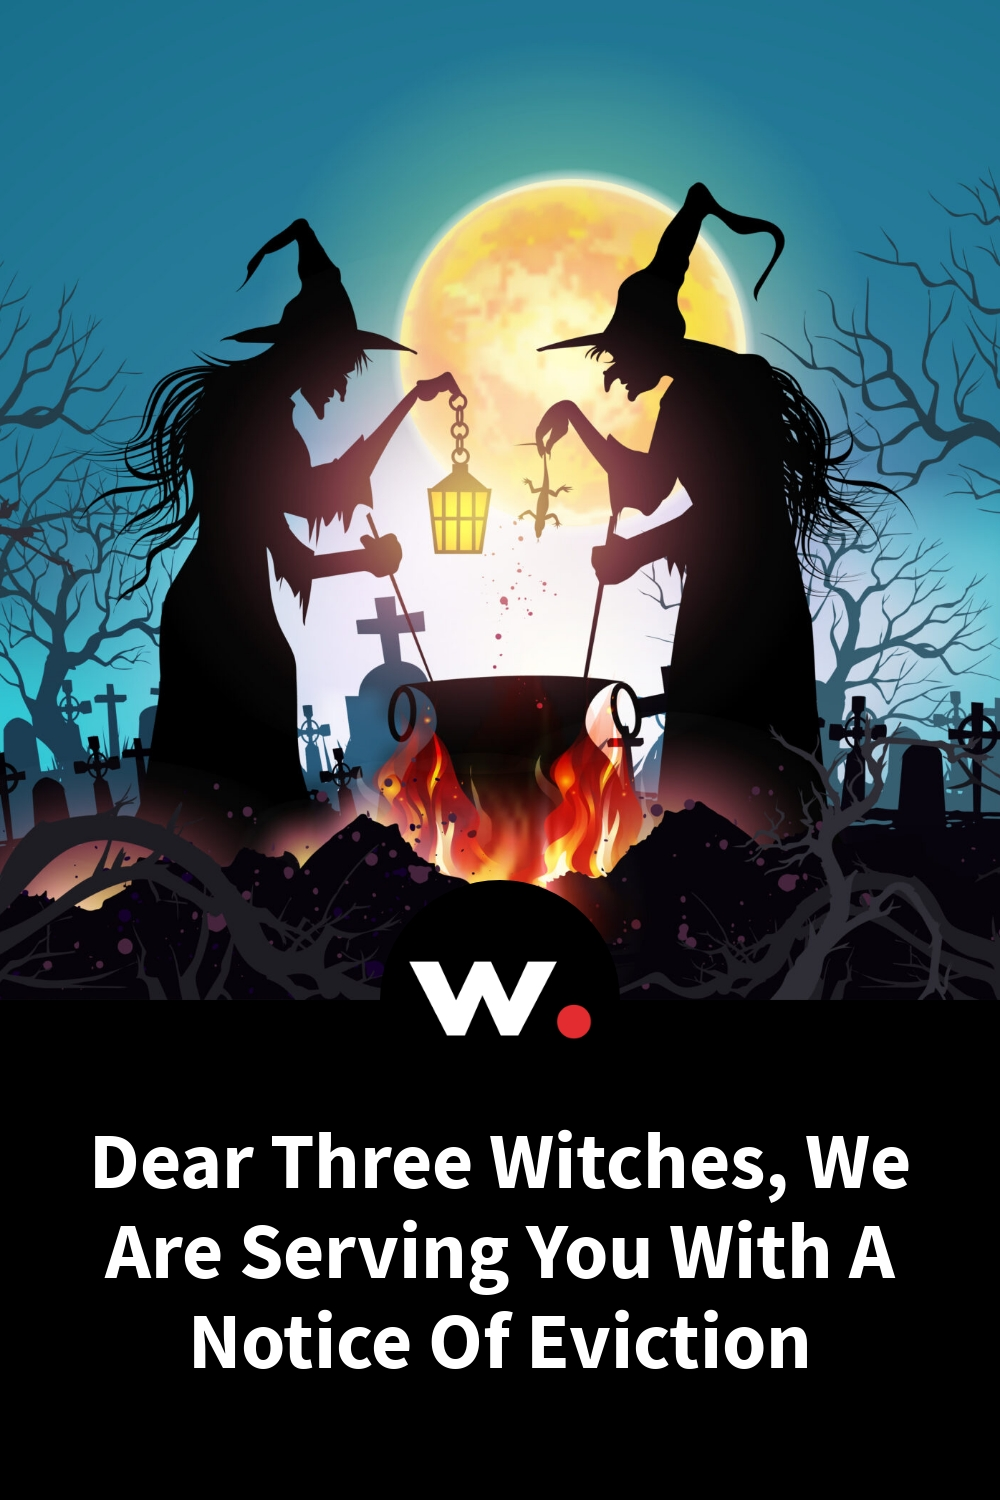 Dear Three Witches, We Are Serving You With A Notice Of Eviction